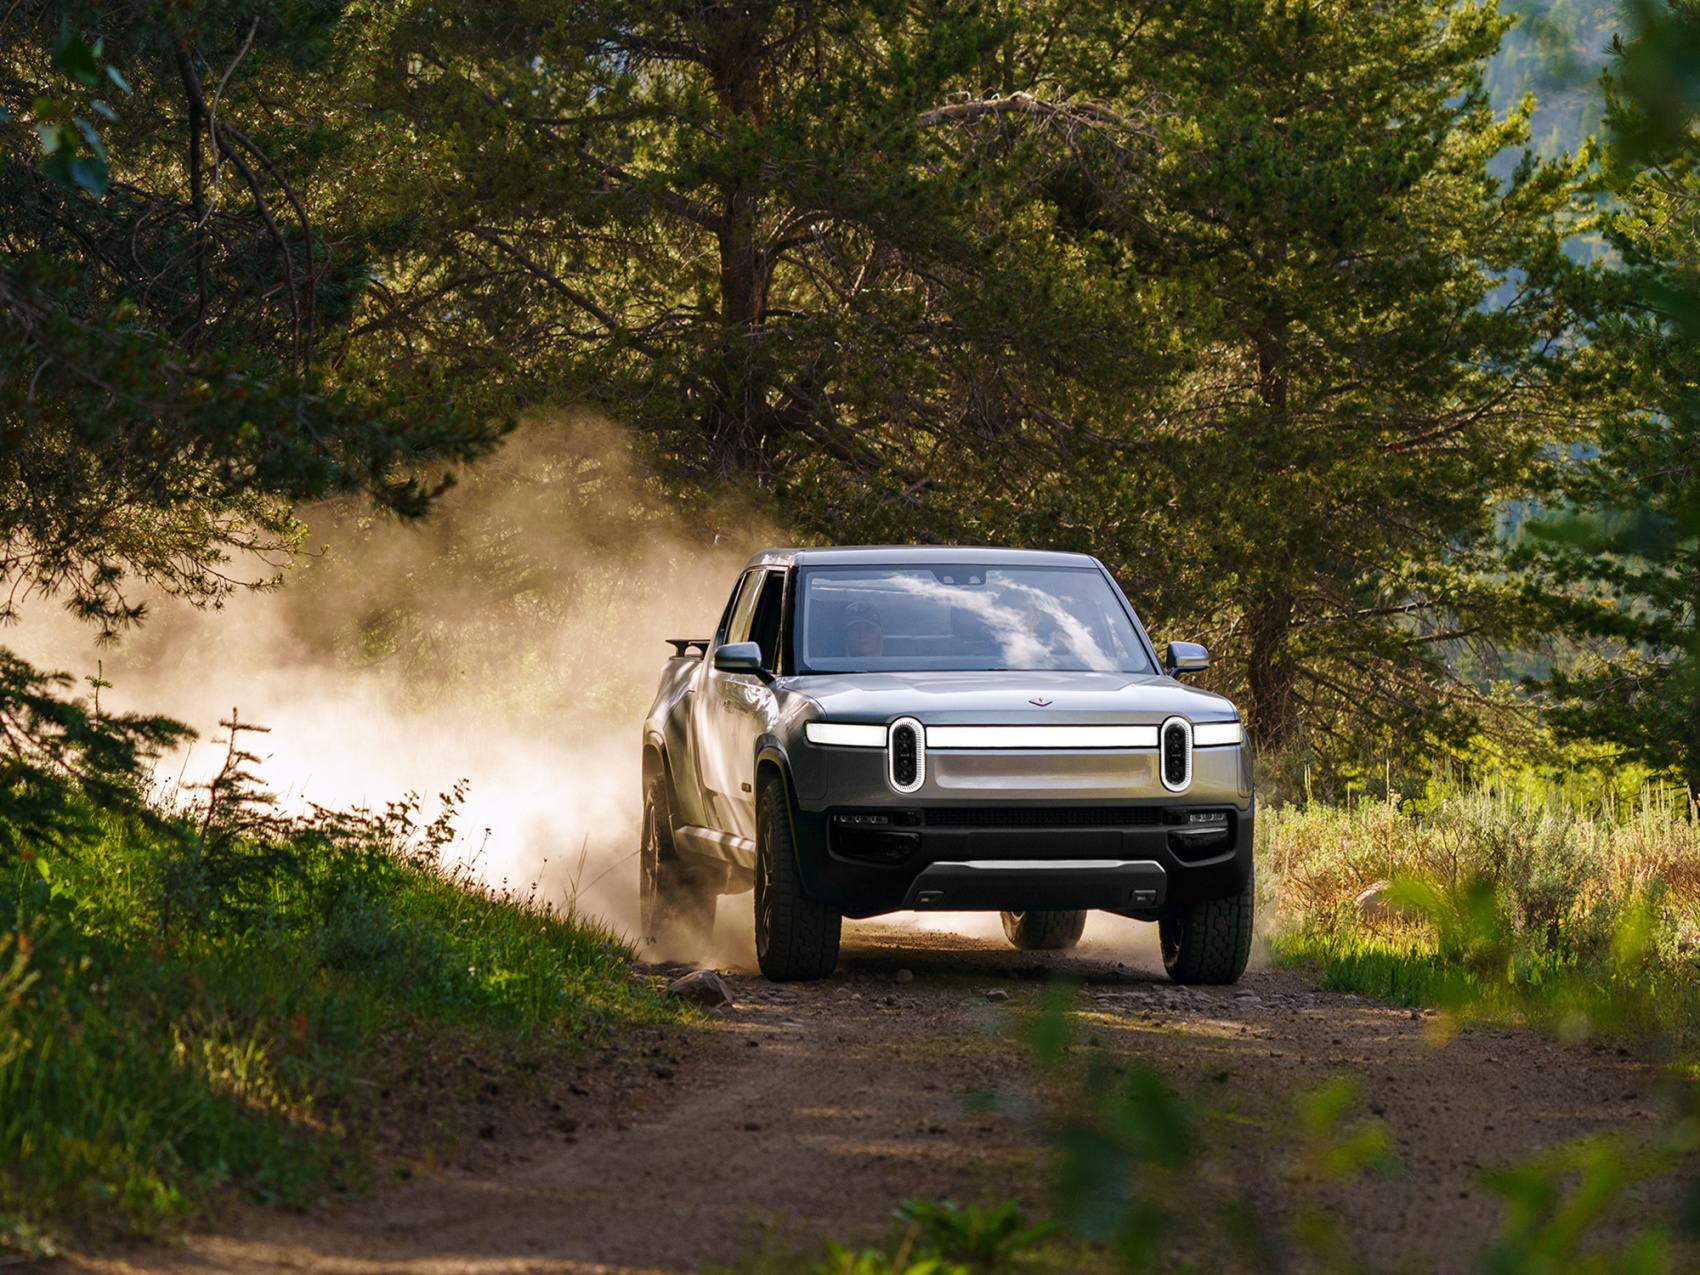 The Rivian R1T